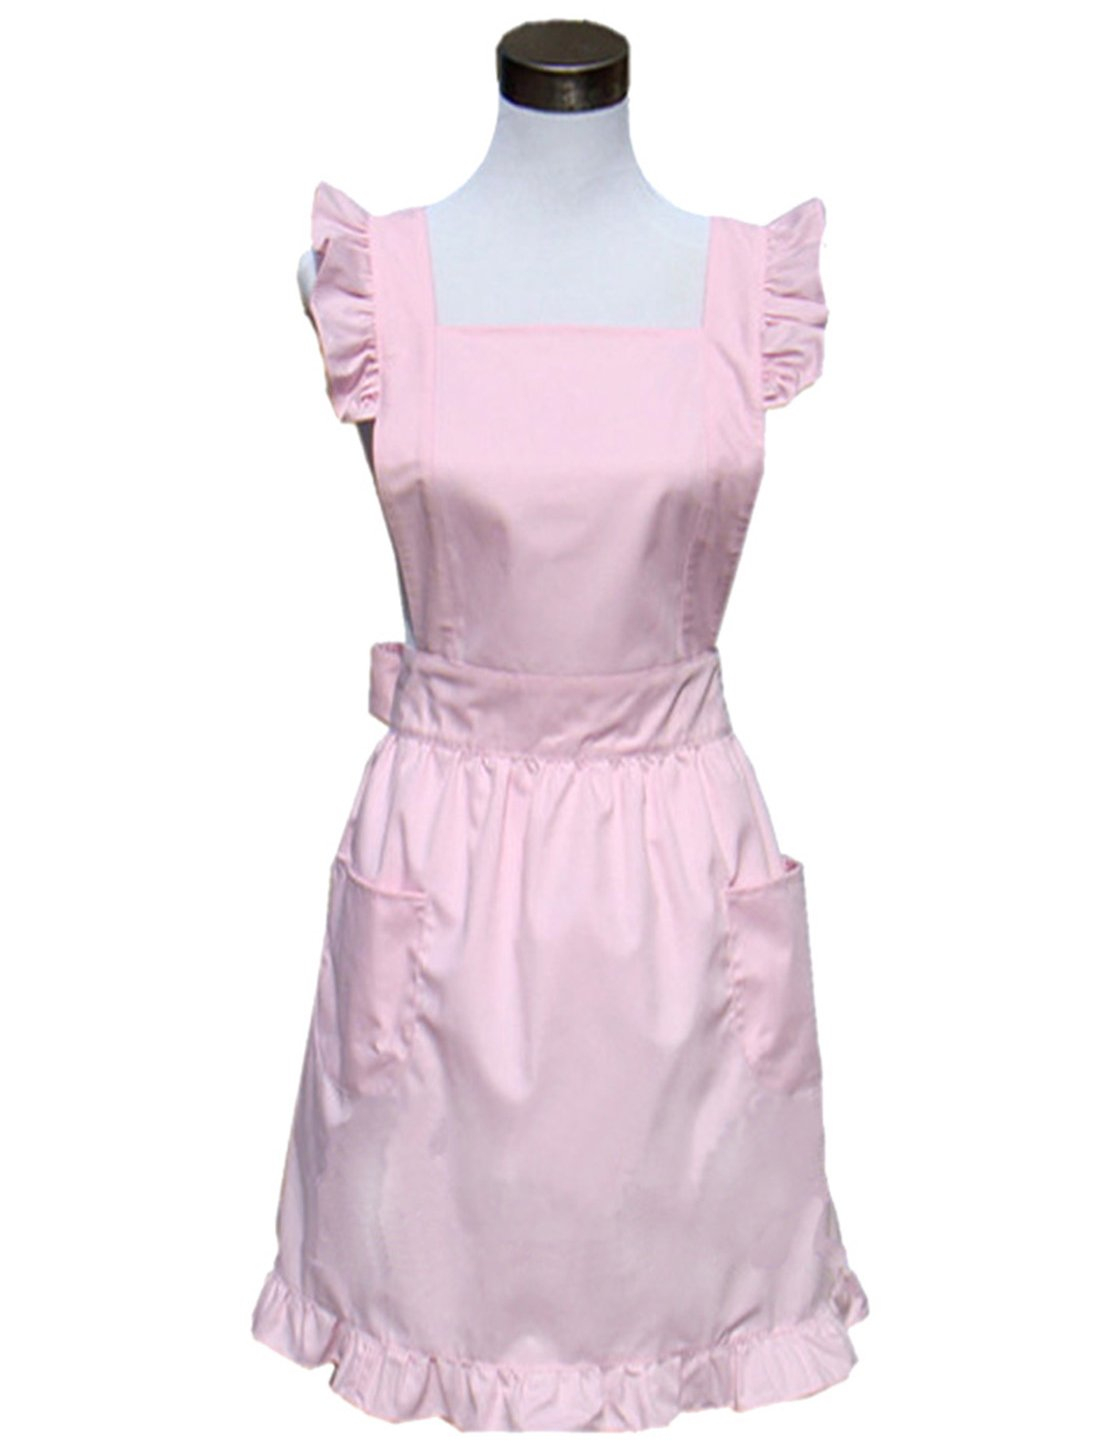 Hyzrz Lovely Retro Lady's Cotton Aprons Chic Cake Kitchen Cook Apron (Pink)